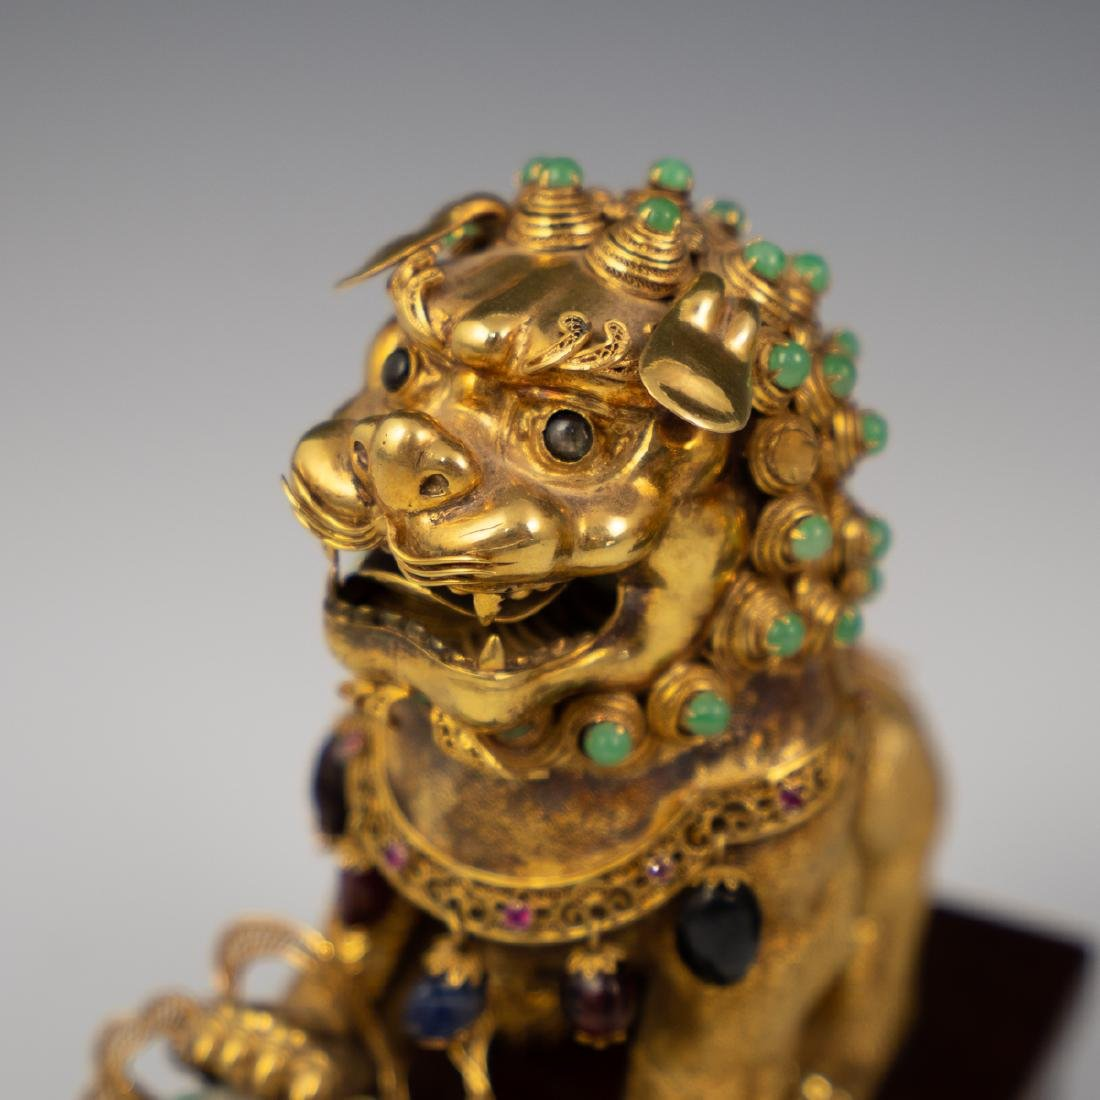 14K Solid Gold and Precious Stone Foo Dog - 2